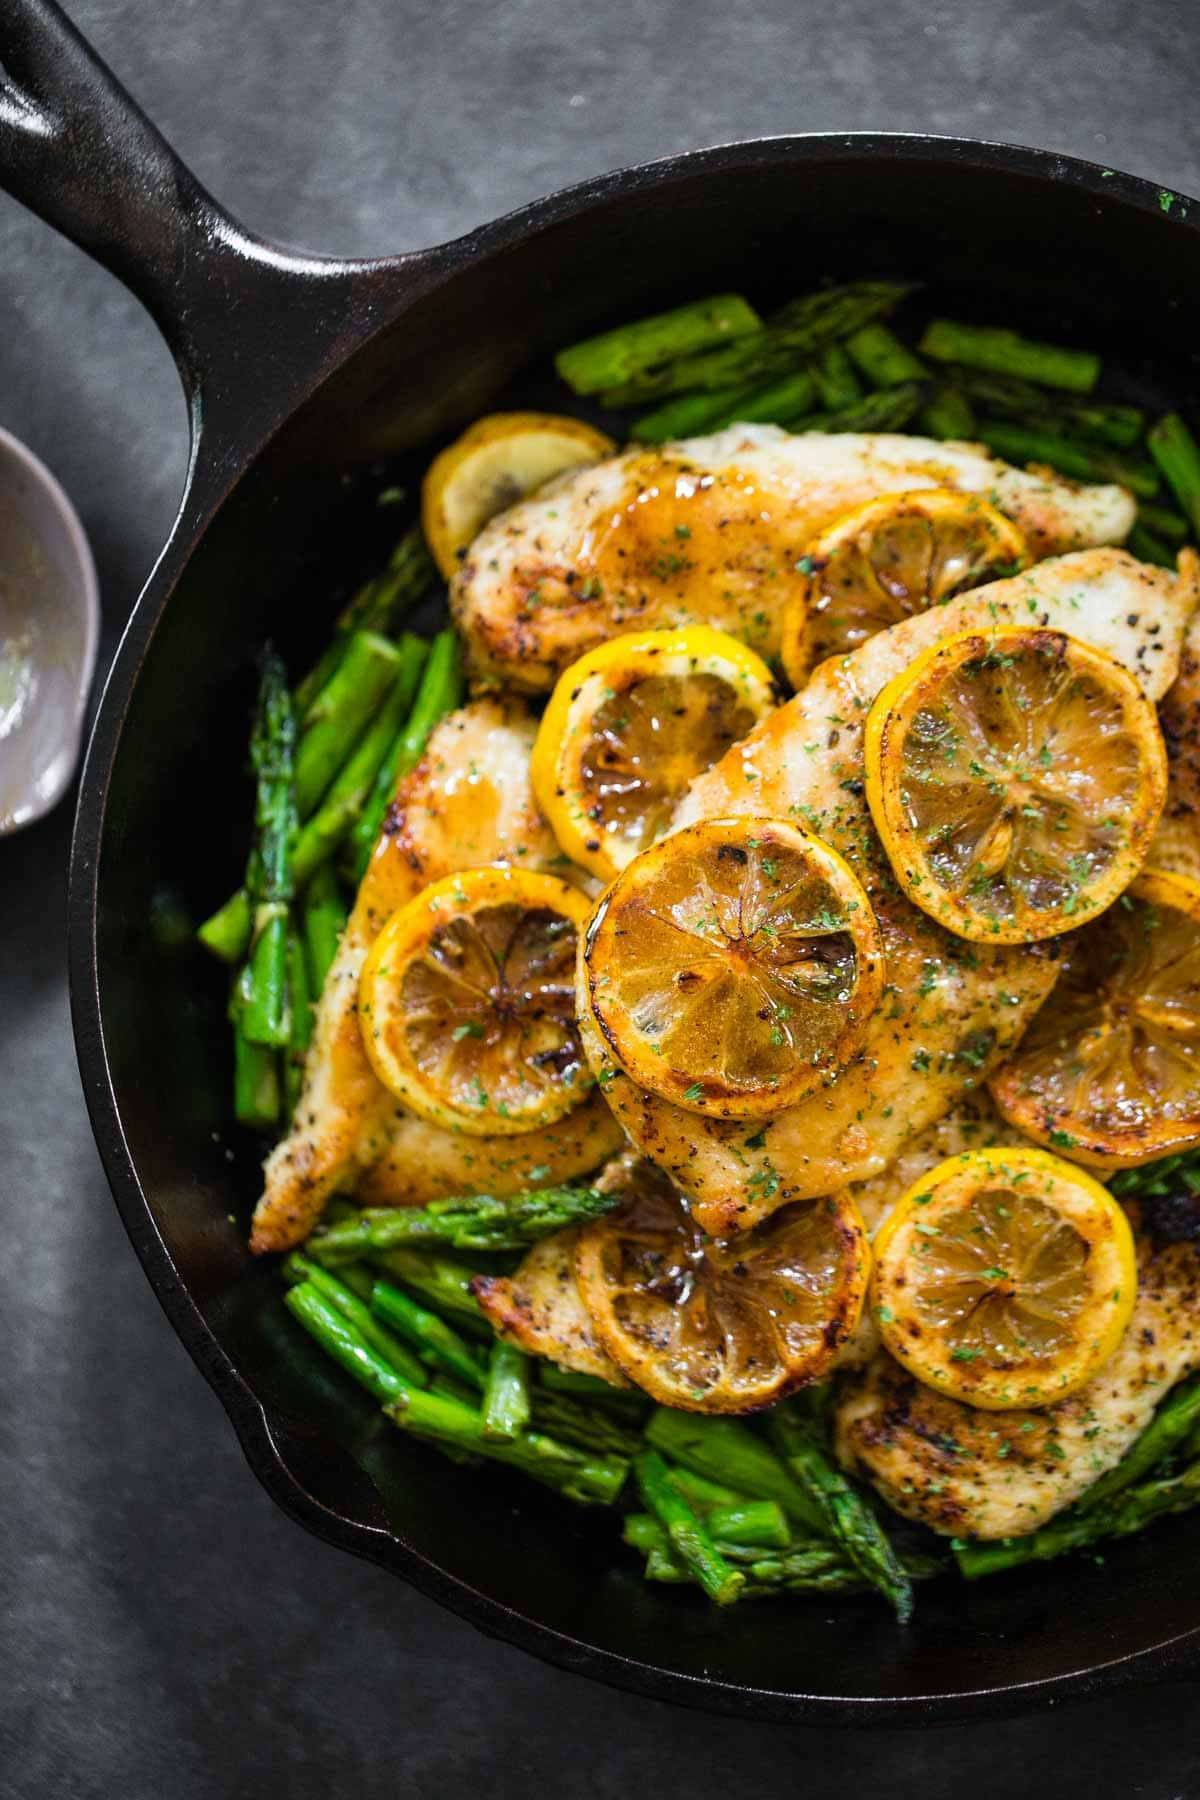 Lemon Chicken With Asparagus In A Skillet